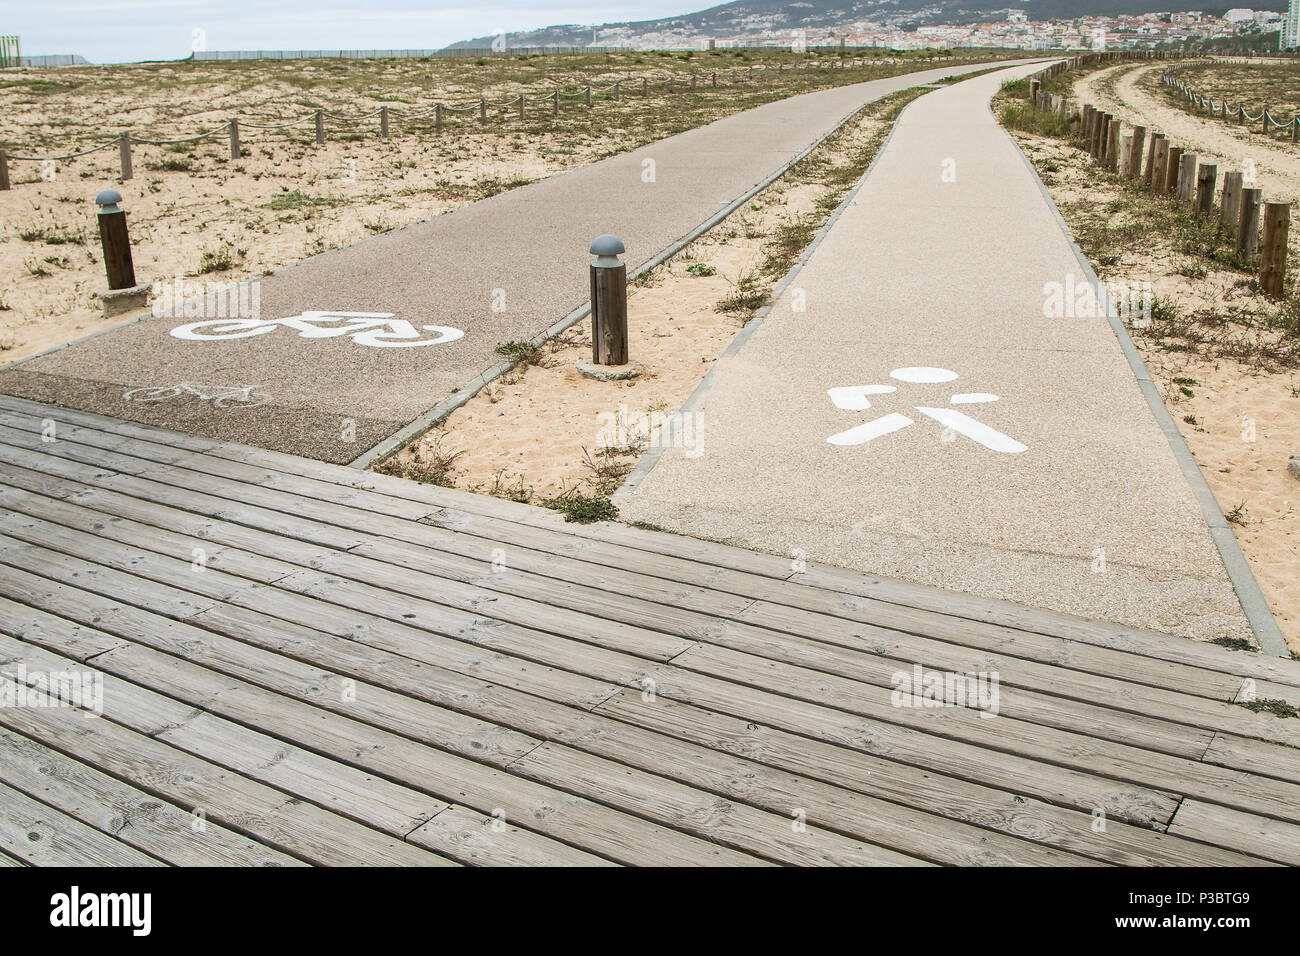 Parallel paths on a beach marked for pedestrians and bicyclists. - Stock Image